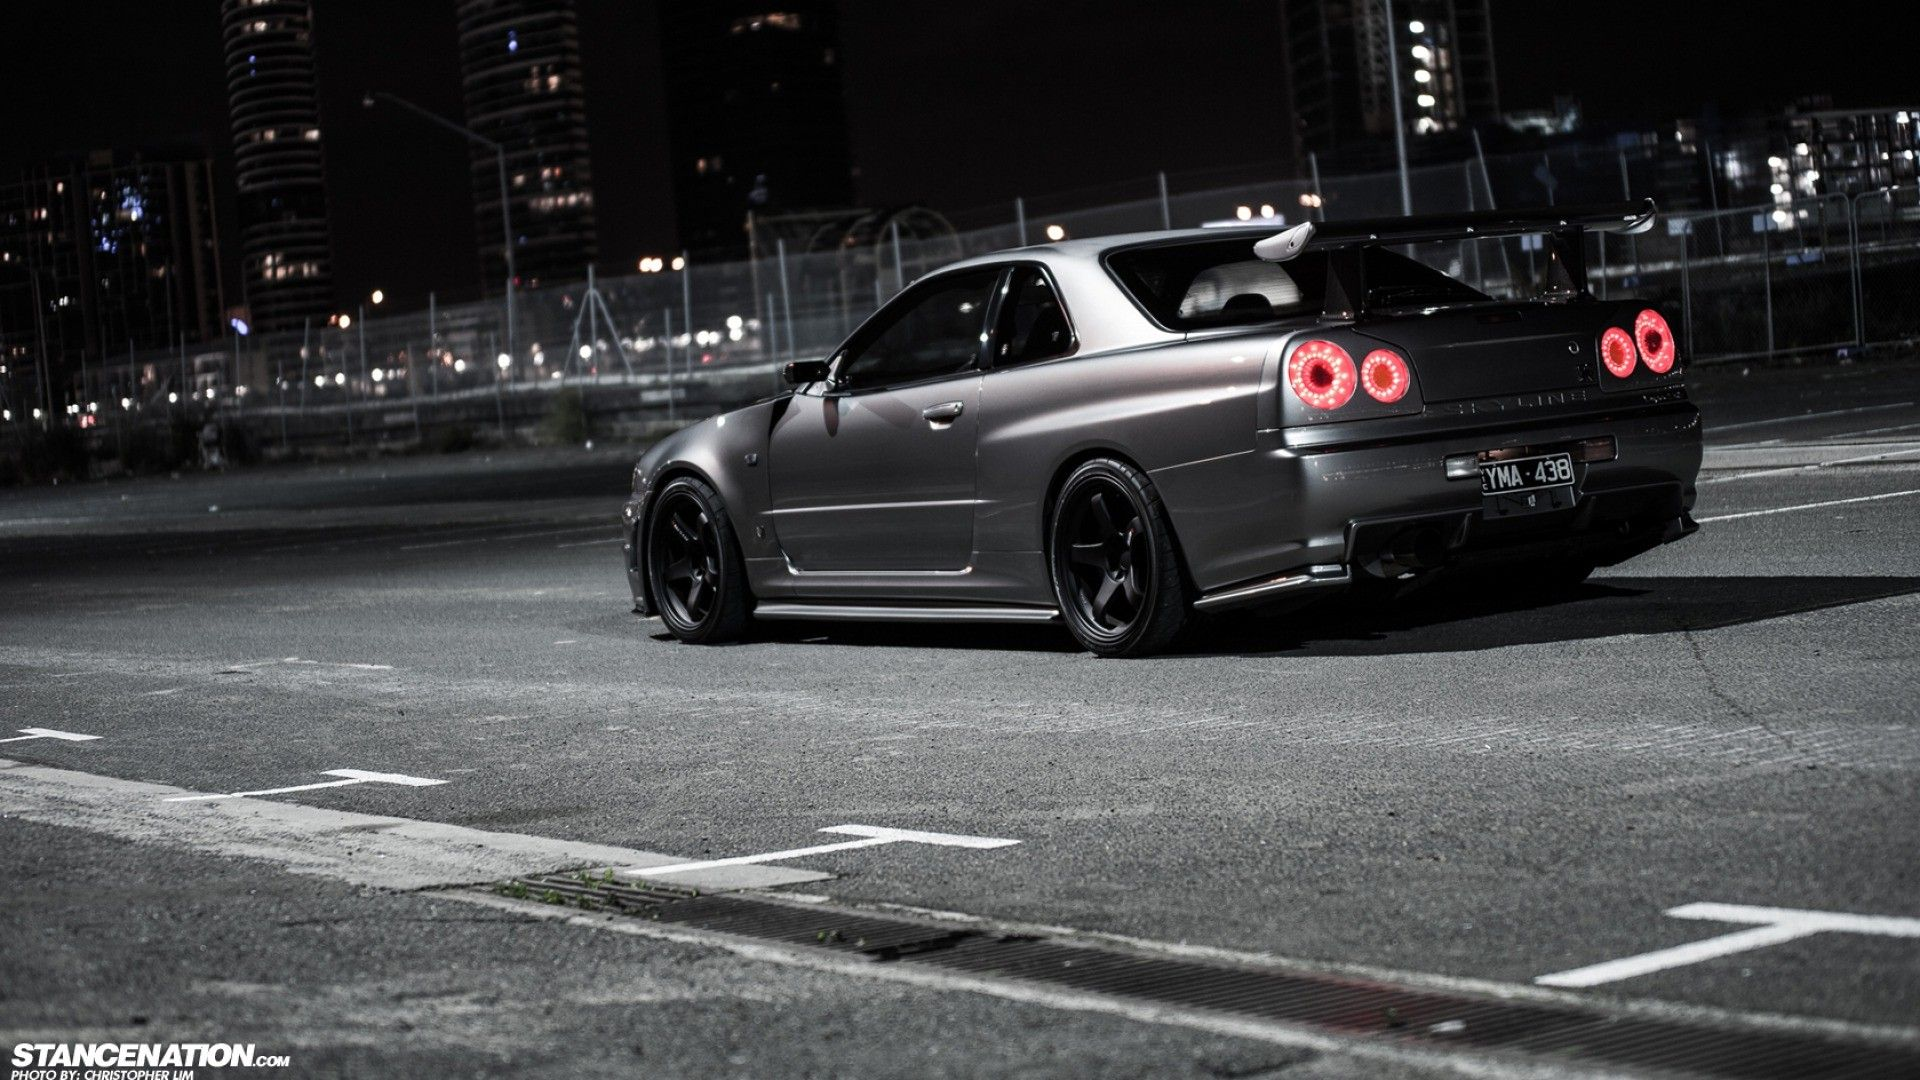 Jdm cars wallpapers download for hd desktop in hd, 2k, 4k and 8k high quality resolution. Wallpaper Jdm Posted By Ethan Tremblay